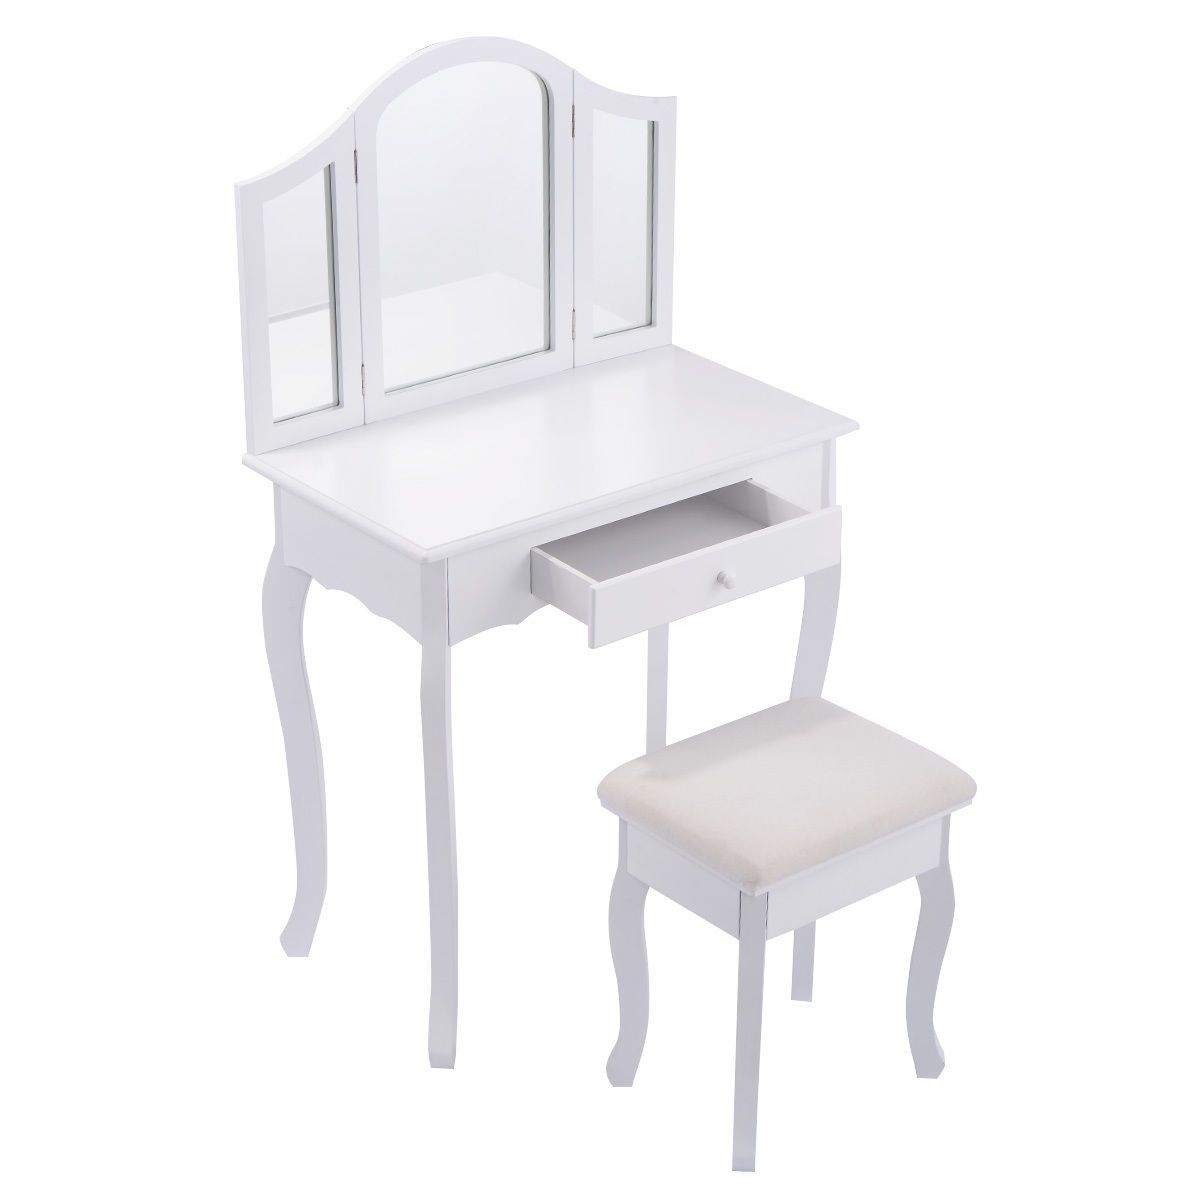 Dressing table with mirror black  white vanity makeup dressing table with tri folding mirror